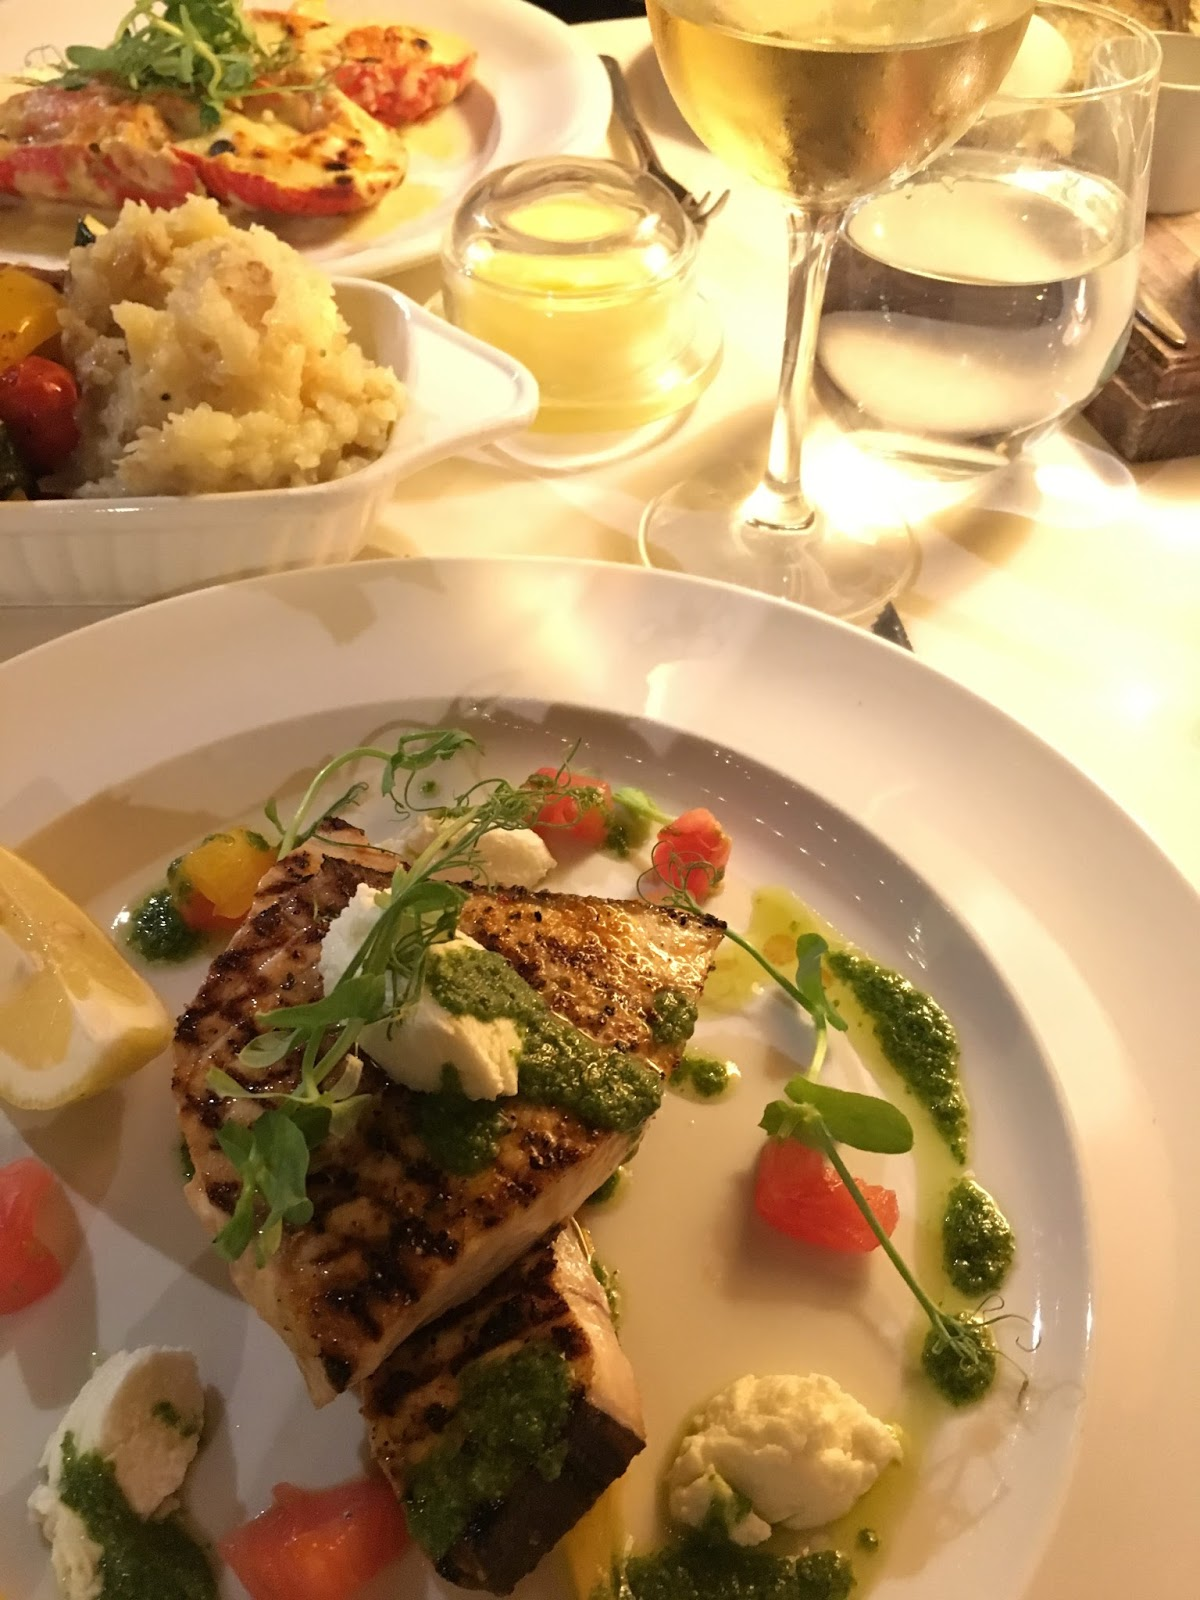 Main courses: swordfish and lobster Thermidor Le Caveau, excellent French restaurant in Skipton, North Yorkshire